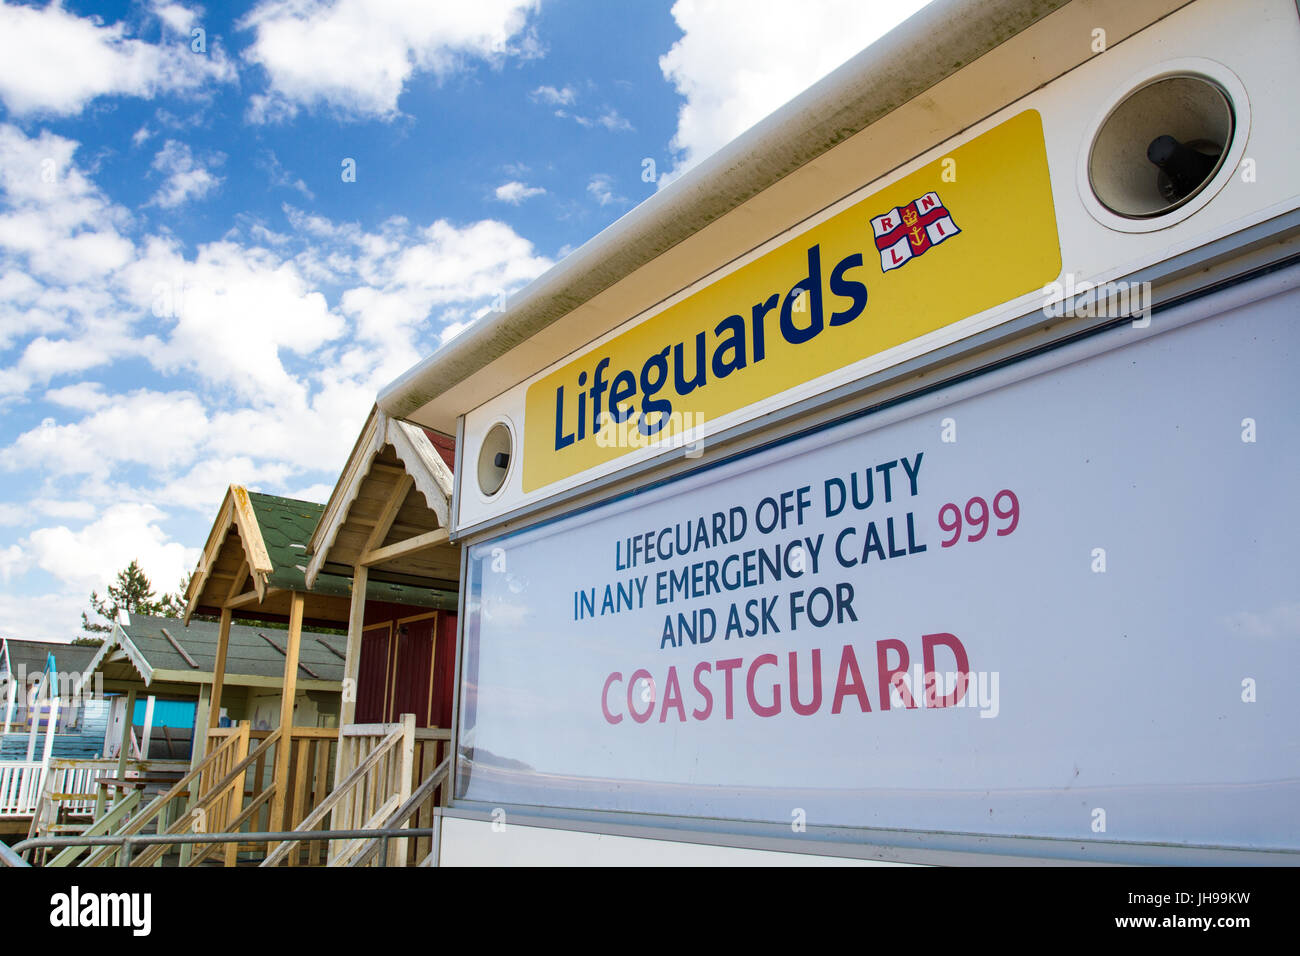 An HM Coastguard station and rows of beach huts on a sandy beach in Norfolk, UK that is closed representing a beach - Stock Image